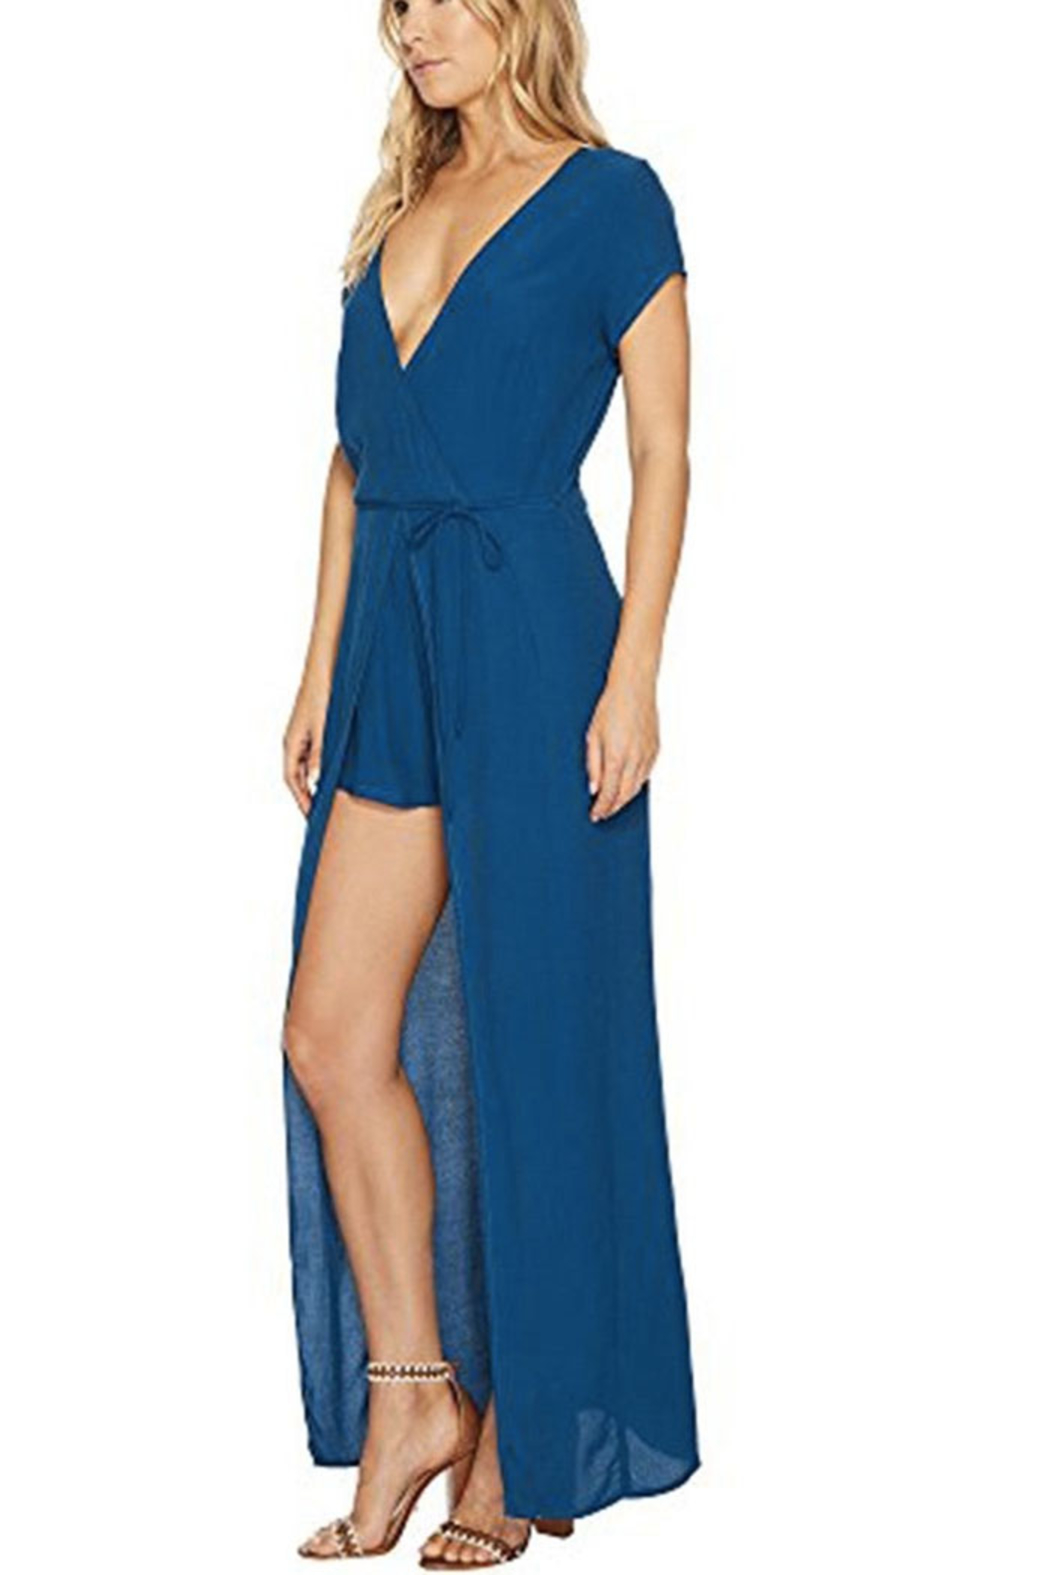 Lucy Love Lapis Romper Dress - Front Full Image